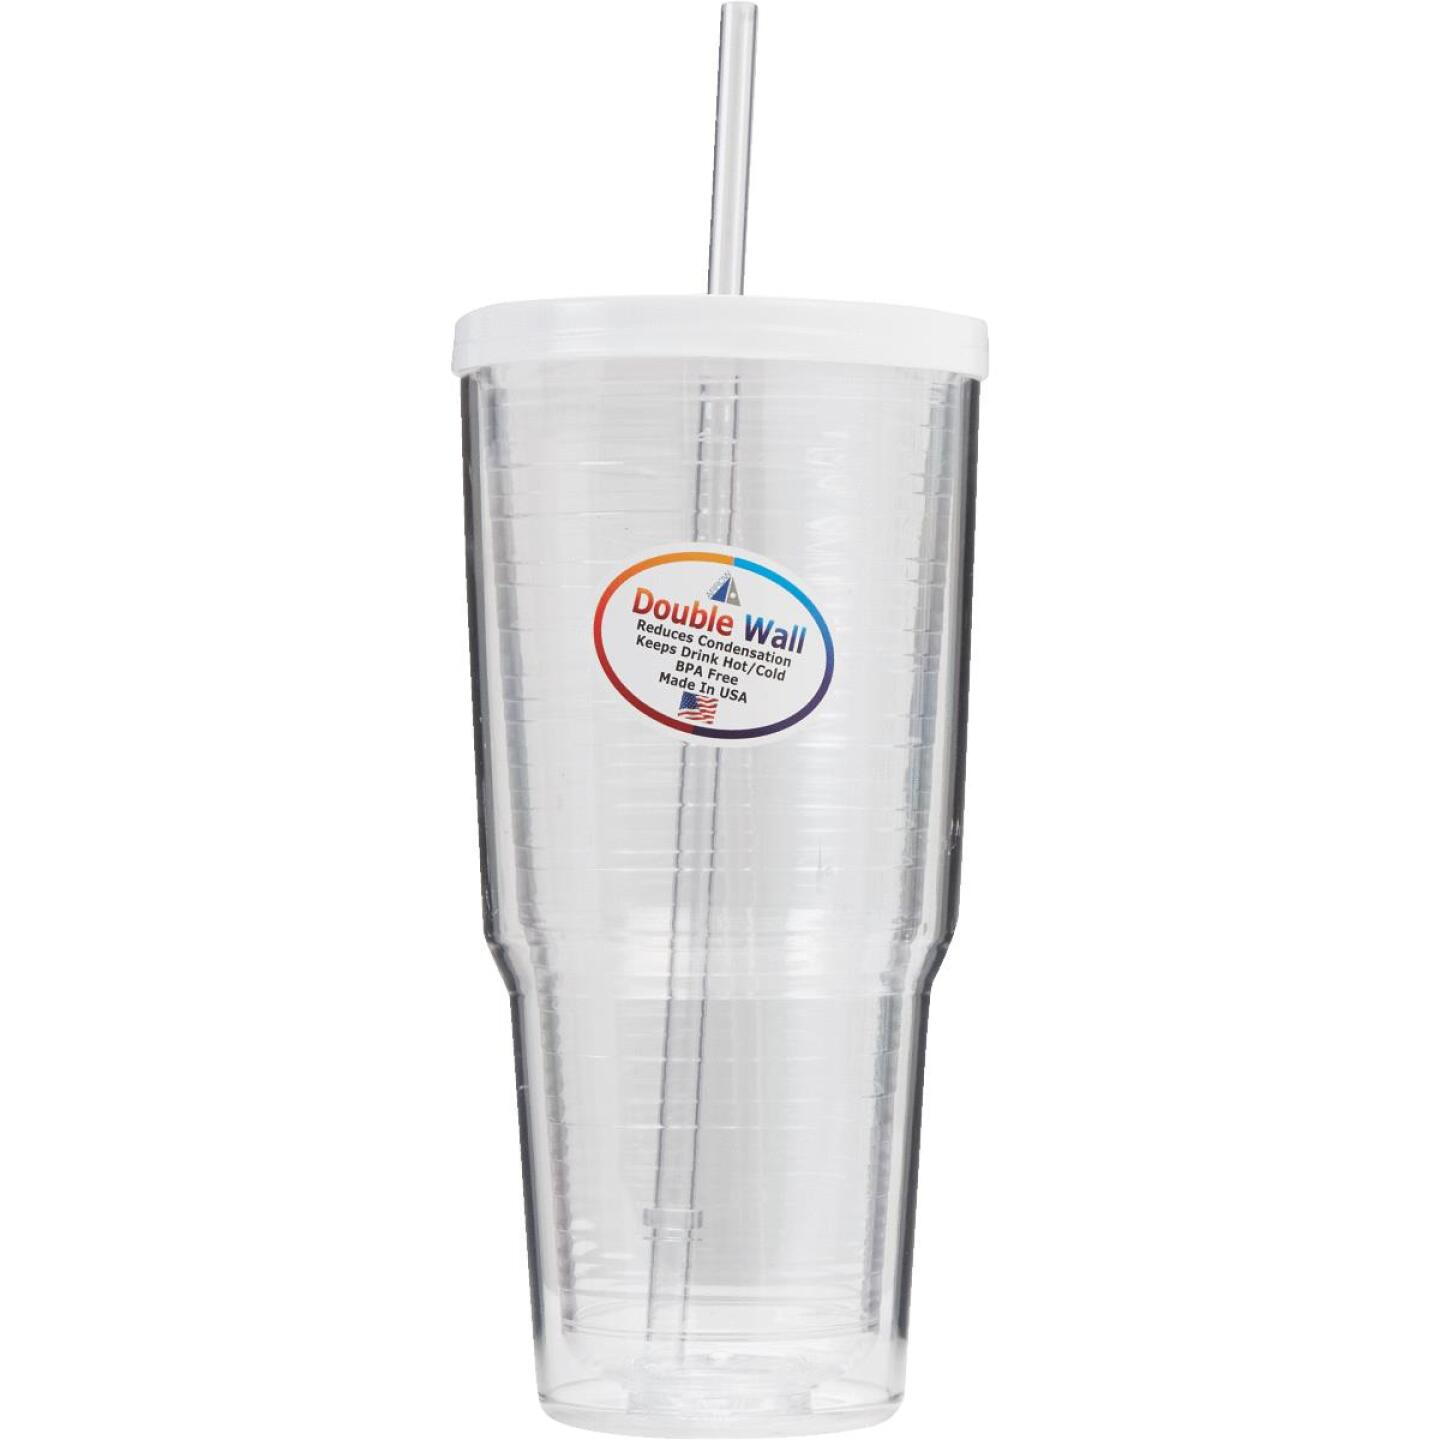 Arrow 24 Oz. Double Wall Insulated Tumbler Image 3